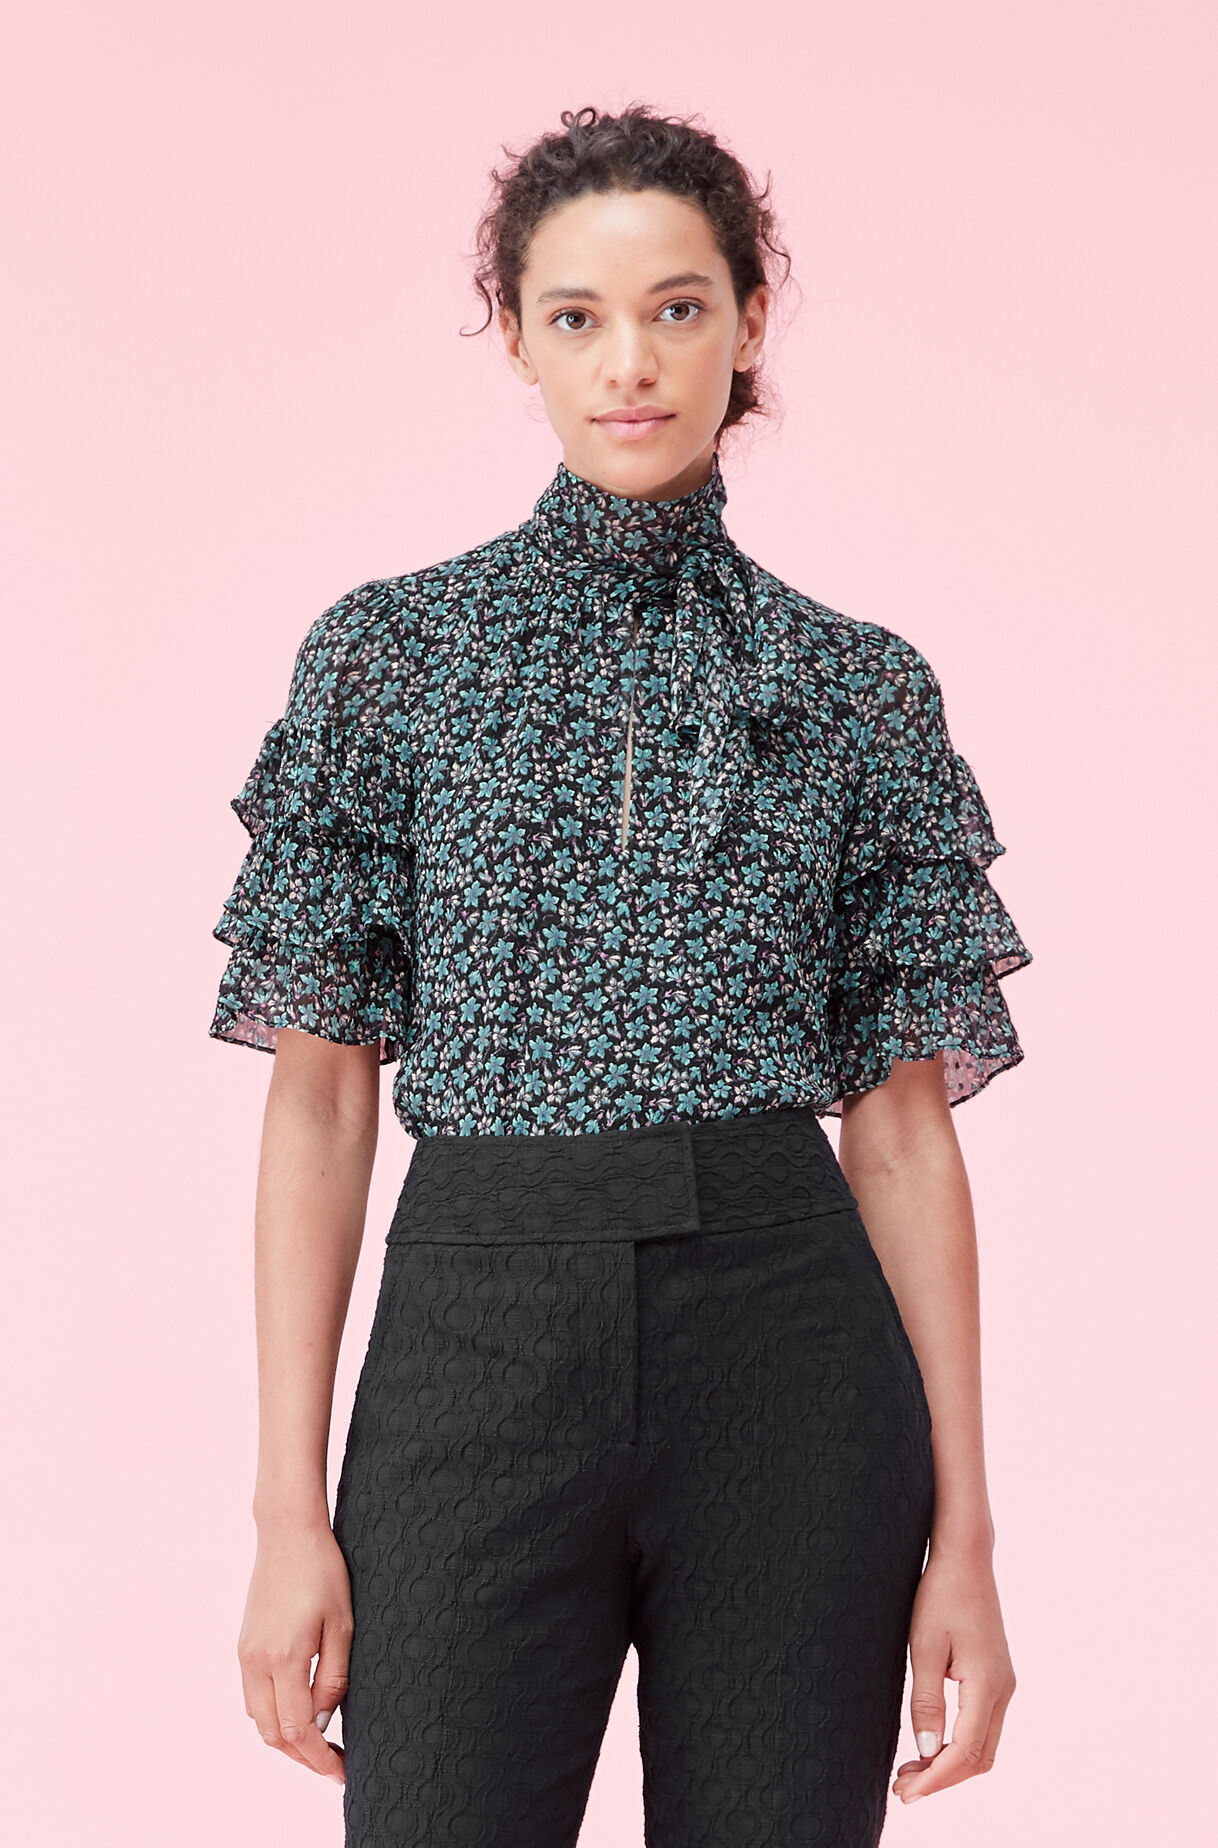 Louisa Floral Ruffle Clip Top, , large